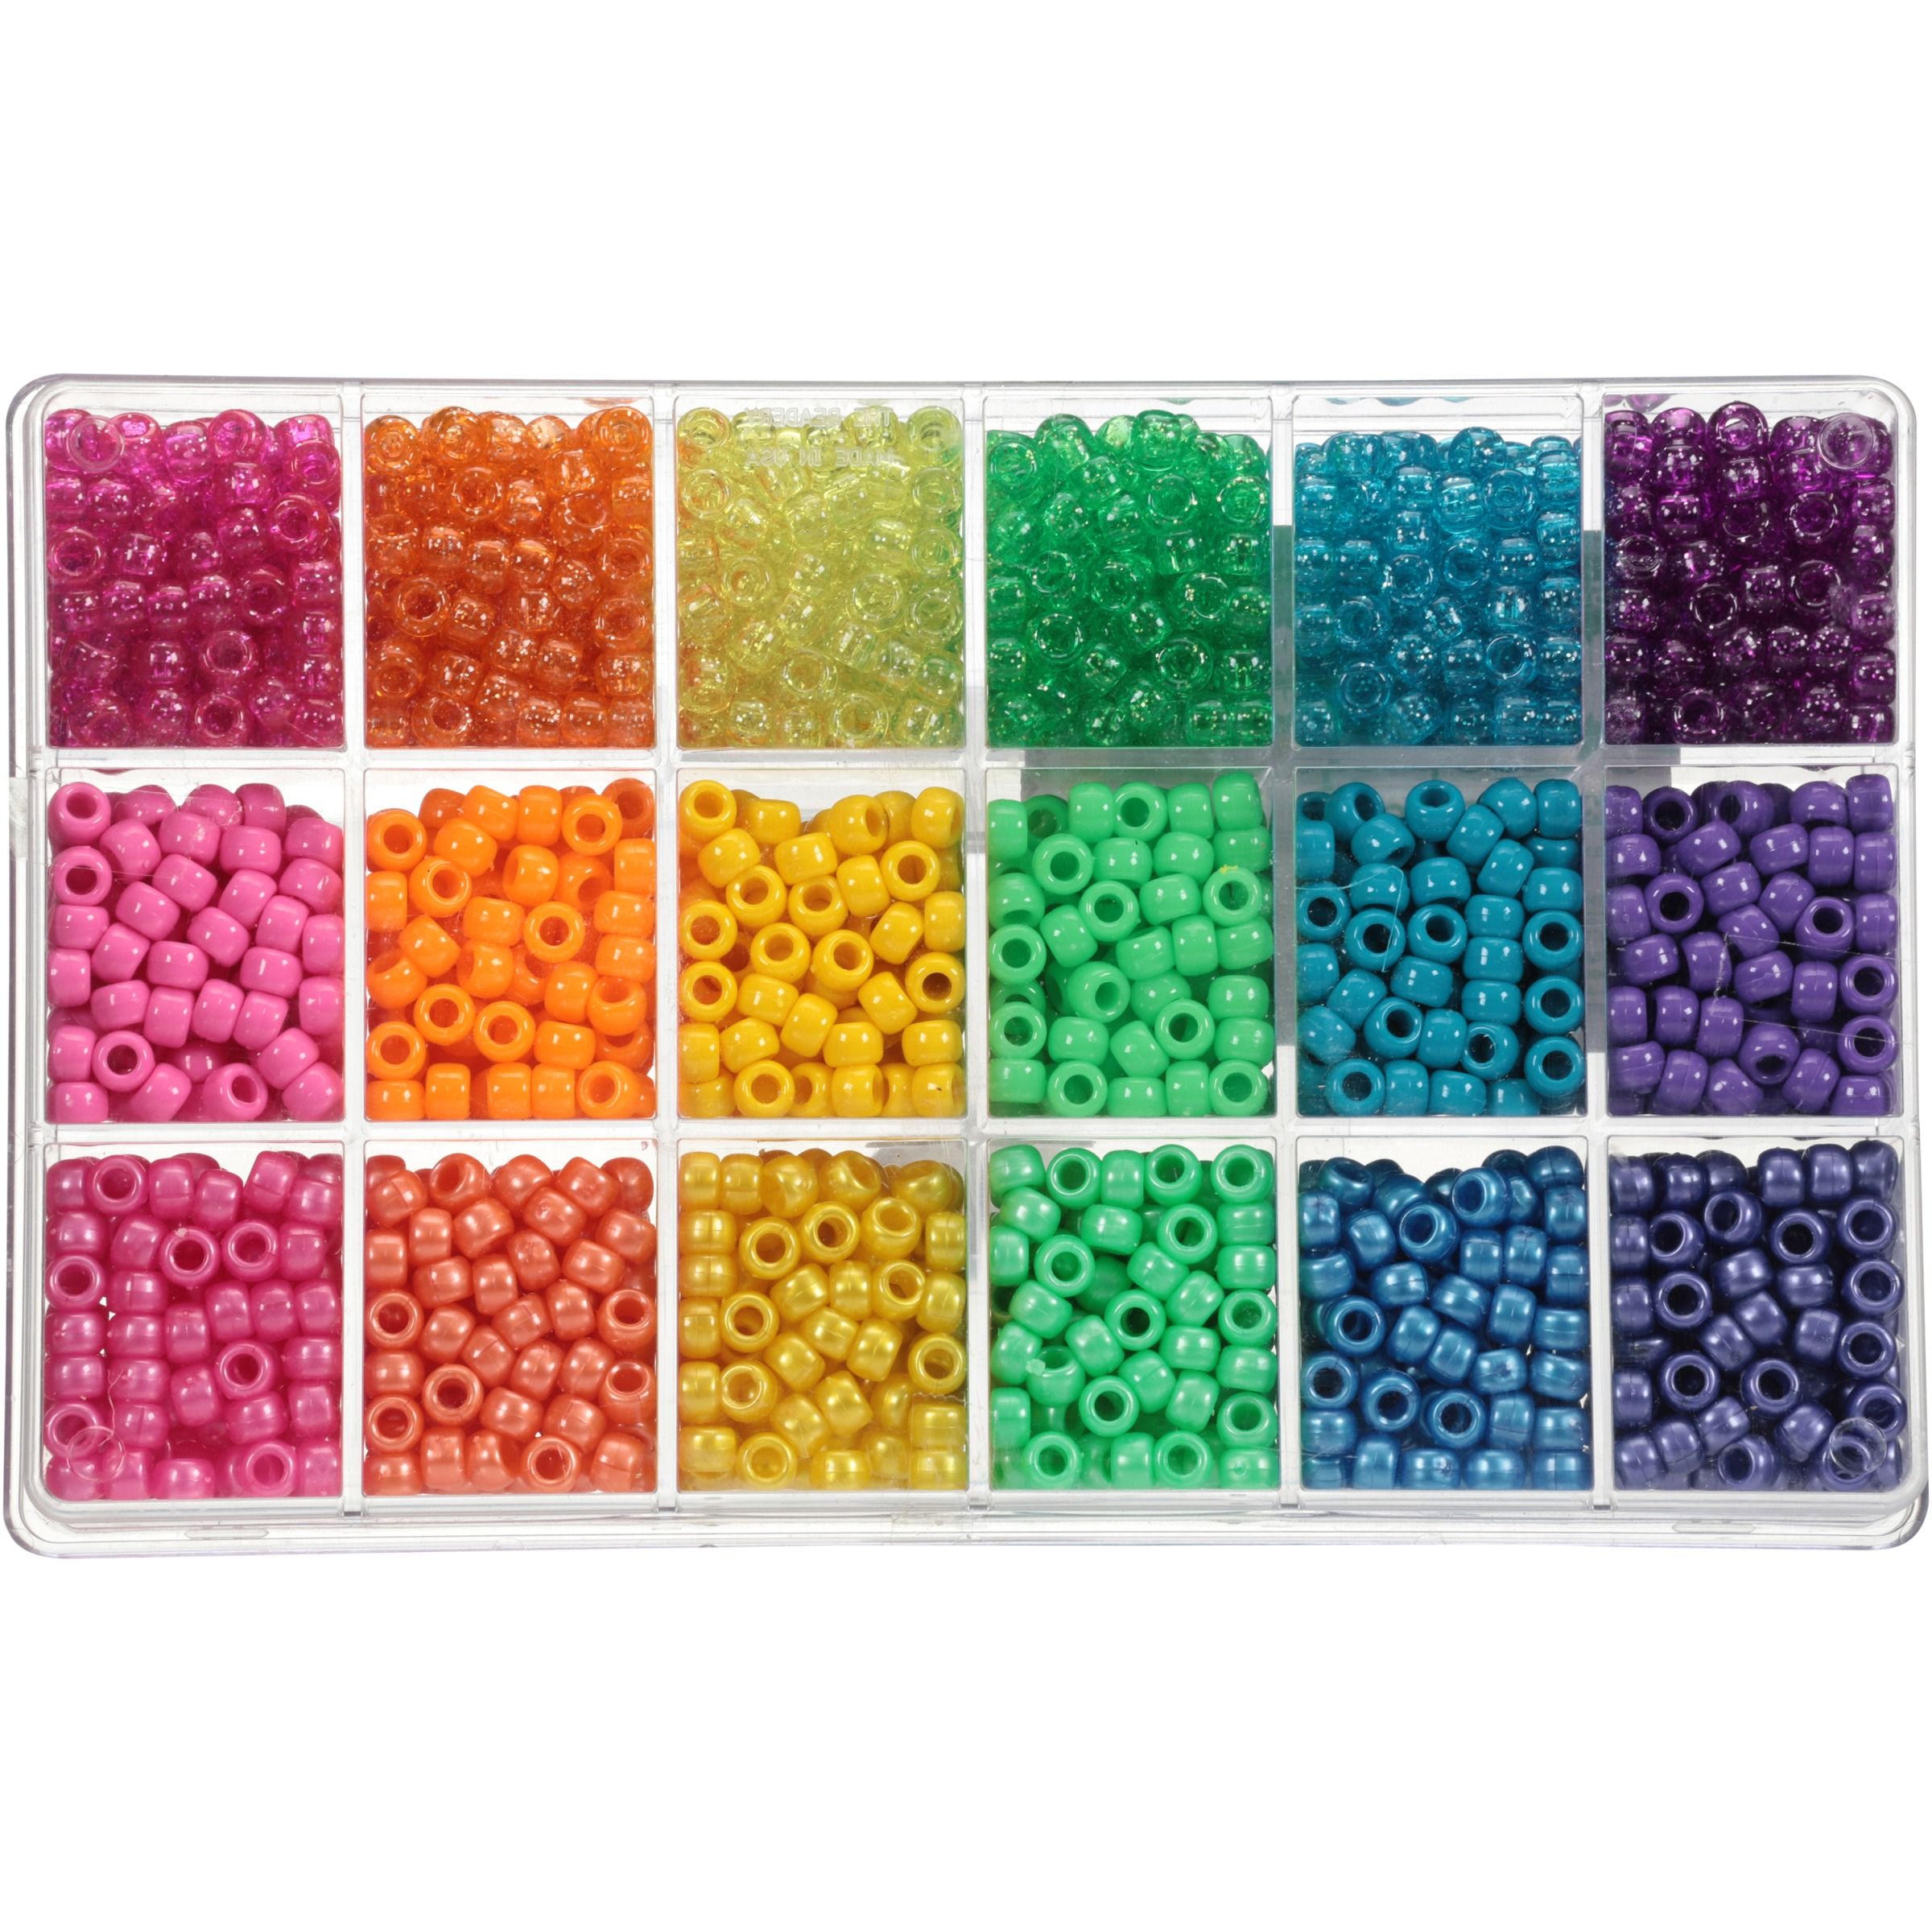 100pcs Candy 16 Mixed Color 8mm Acrylic Round Loose Beads Making Necklace Bracelet Diy Jewelry Cream Beads Handmad Neon Smooth Beads & Jewelry Making Jewelry & Accessories